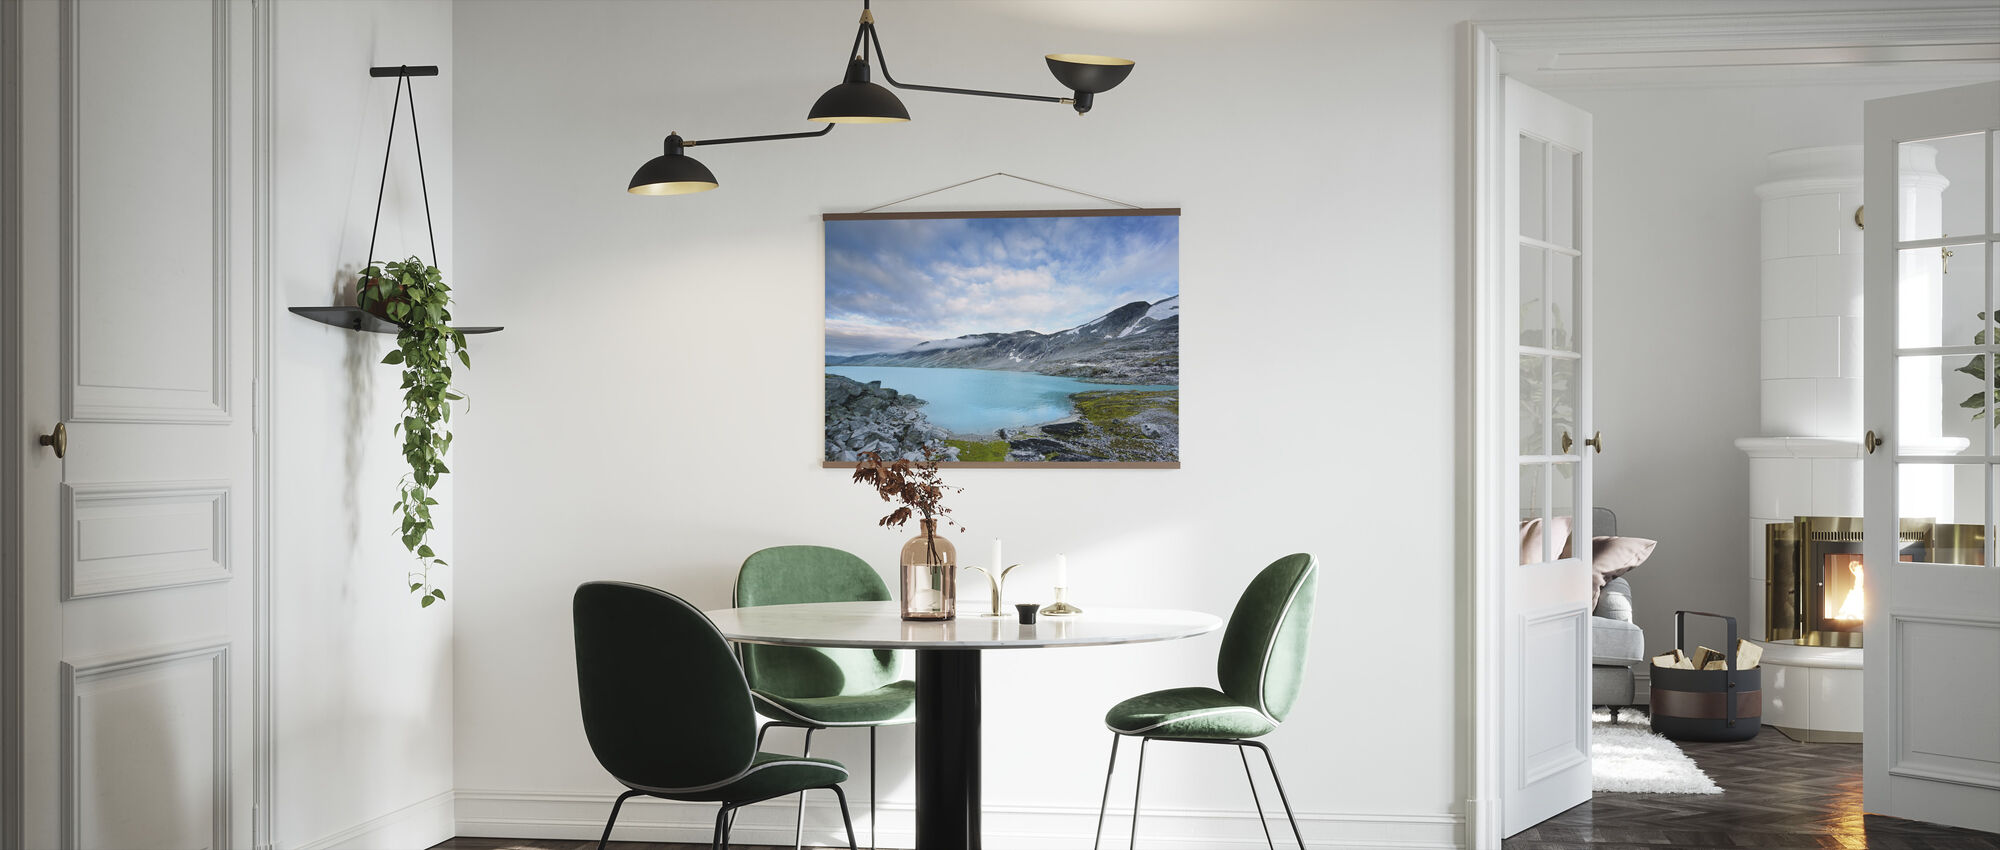 Old Strynefjell, Norway - Poster - Kitchen